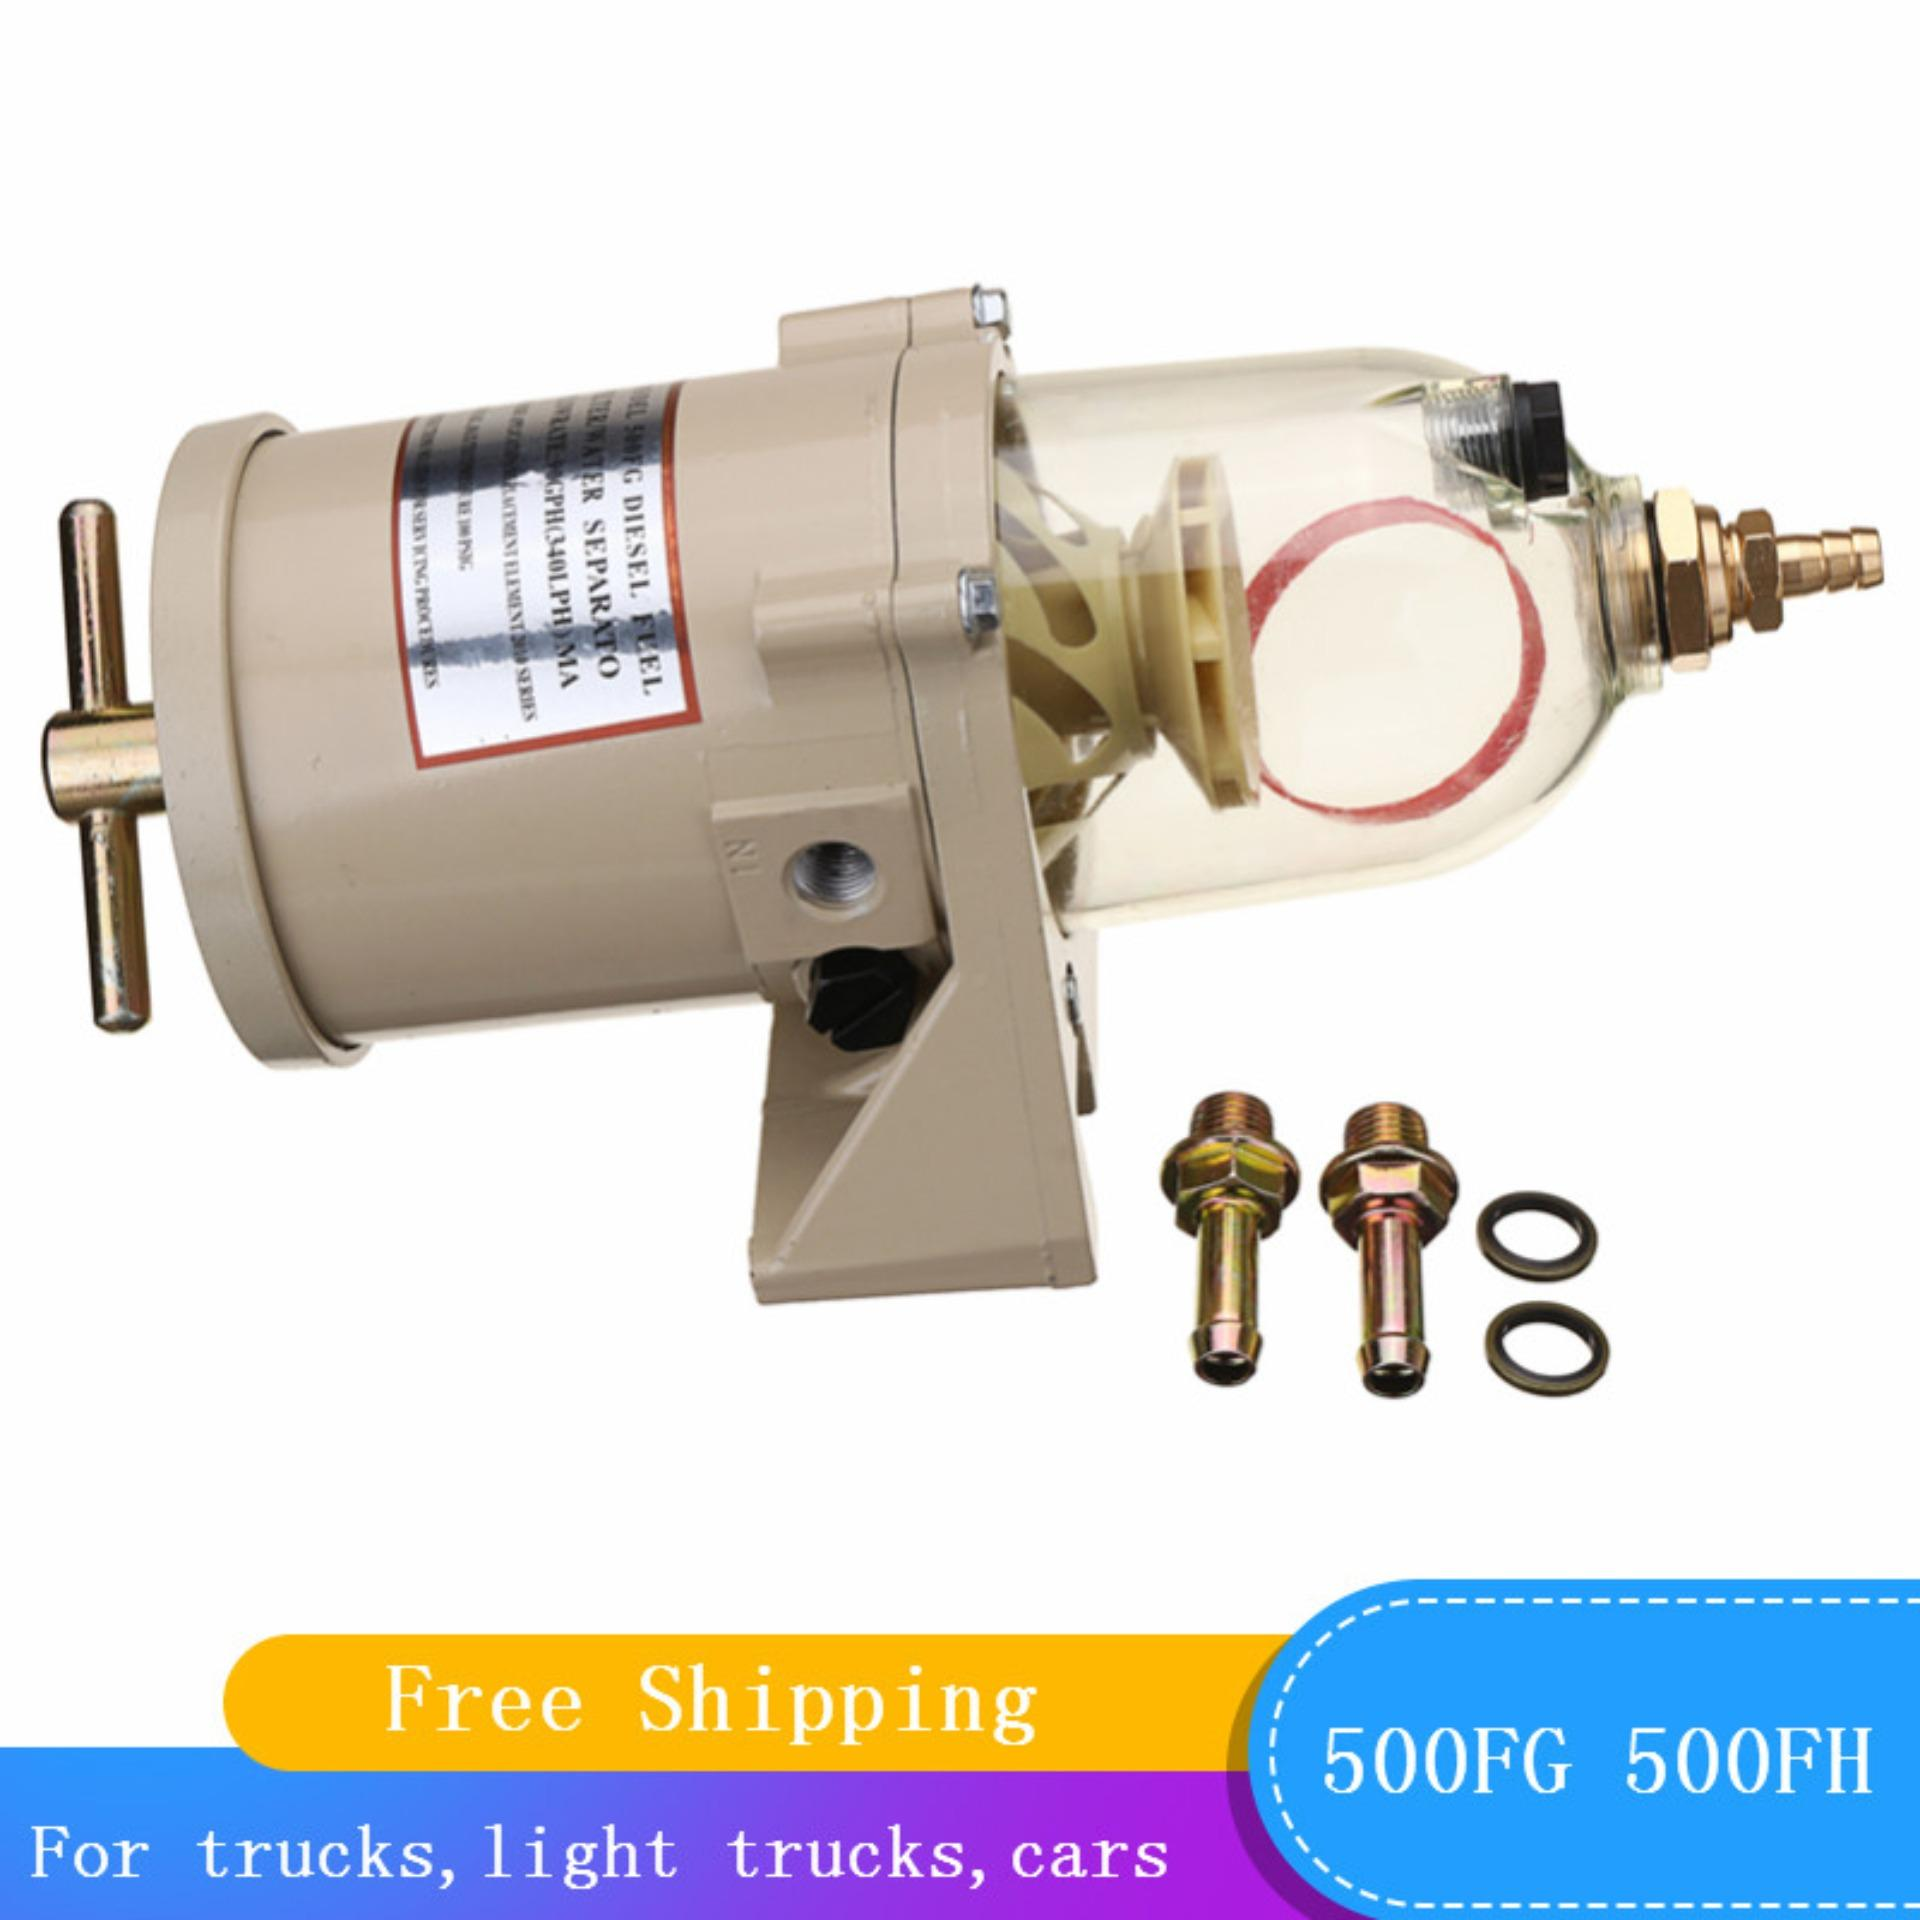 Fuel System For Sale Pump Filter Cleaner Online Brands Strainers And Filters Free Shipping Super Deal Limited Offer500fg 500fh Diesel Marine Trucks